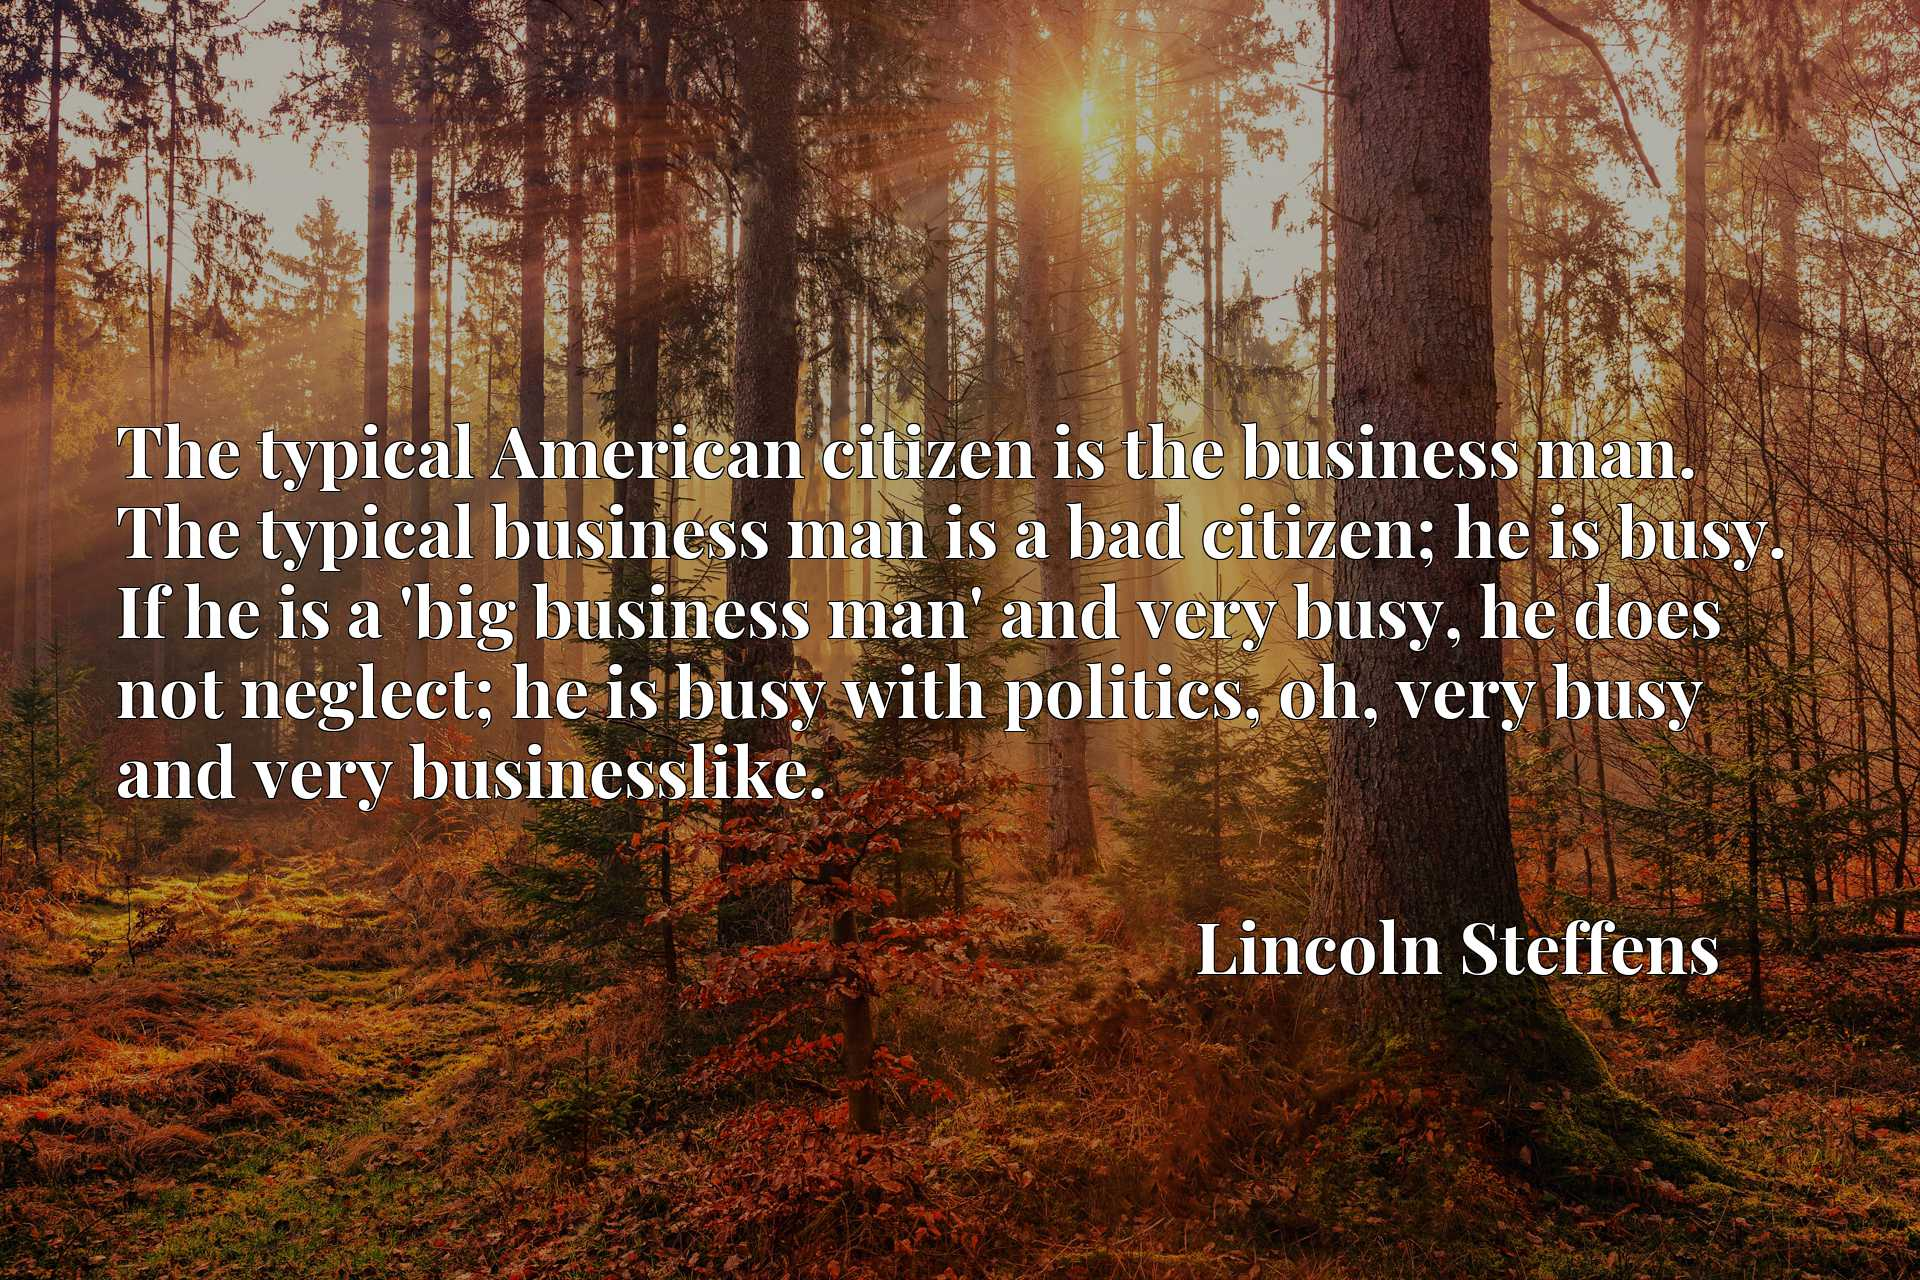 The typical American citizen is the business man. The typical business man is a bad citizen; he is busy. If he is a 'big business man' and very busy, he does not neglect; he is busy with politics, oh, very busy and very businesslike.